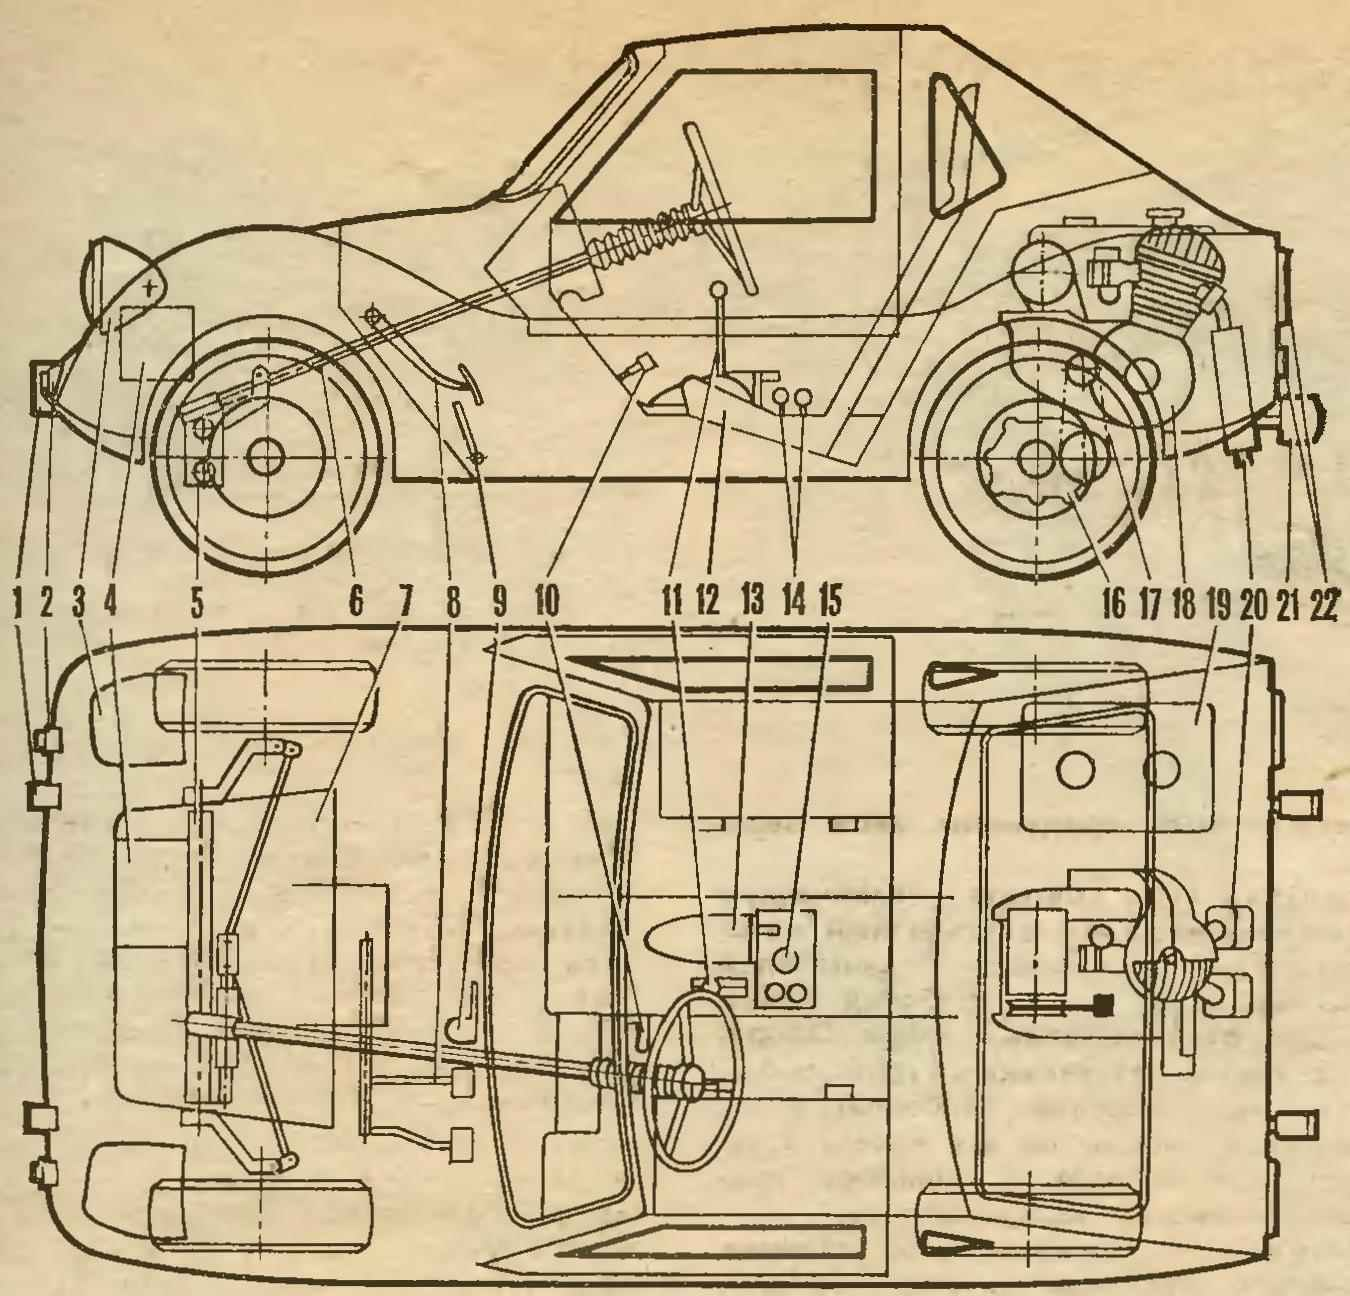 Fig. 2. The layout of the car